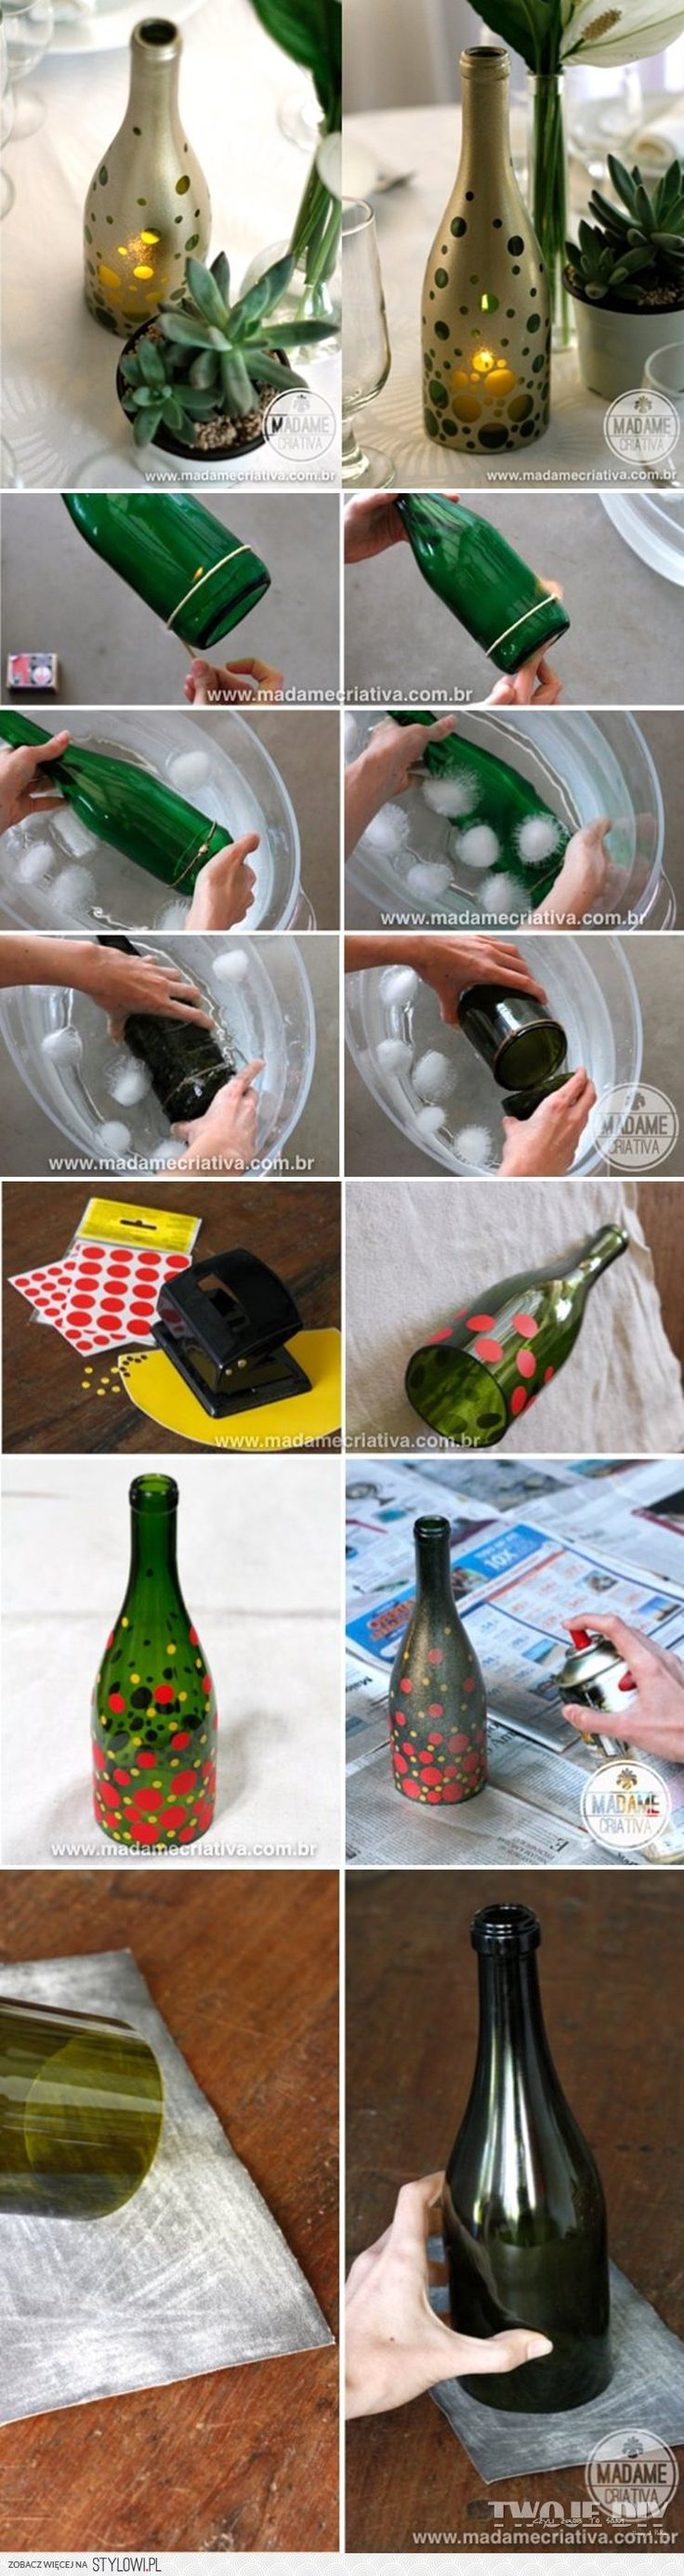 Wine bottle craft